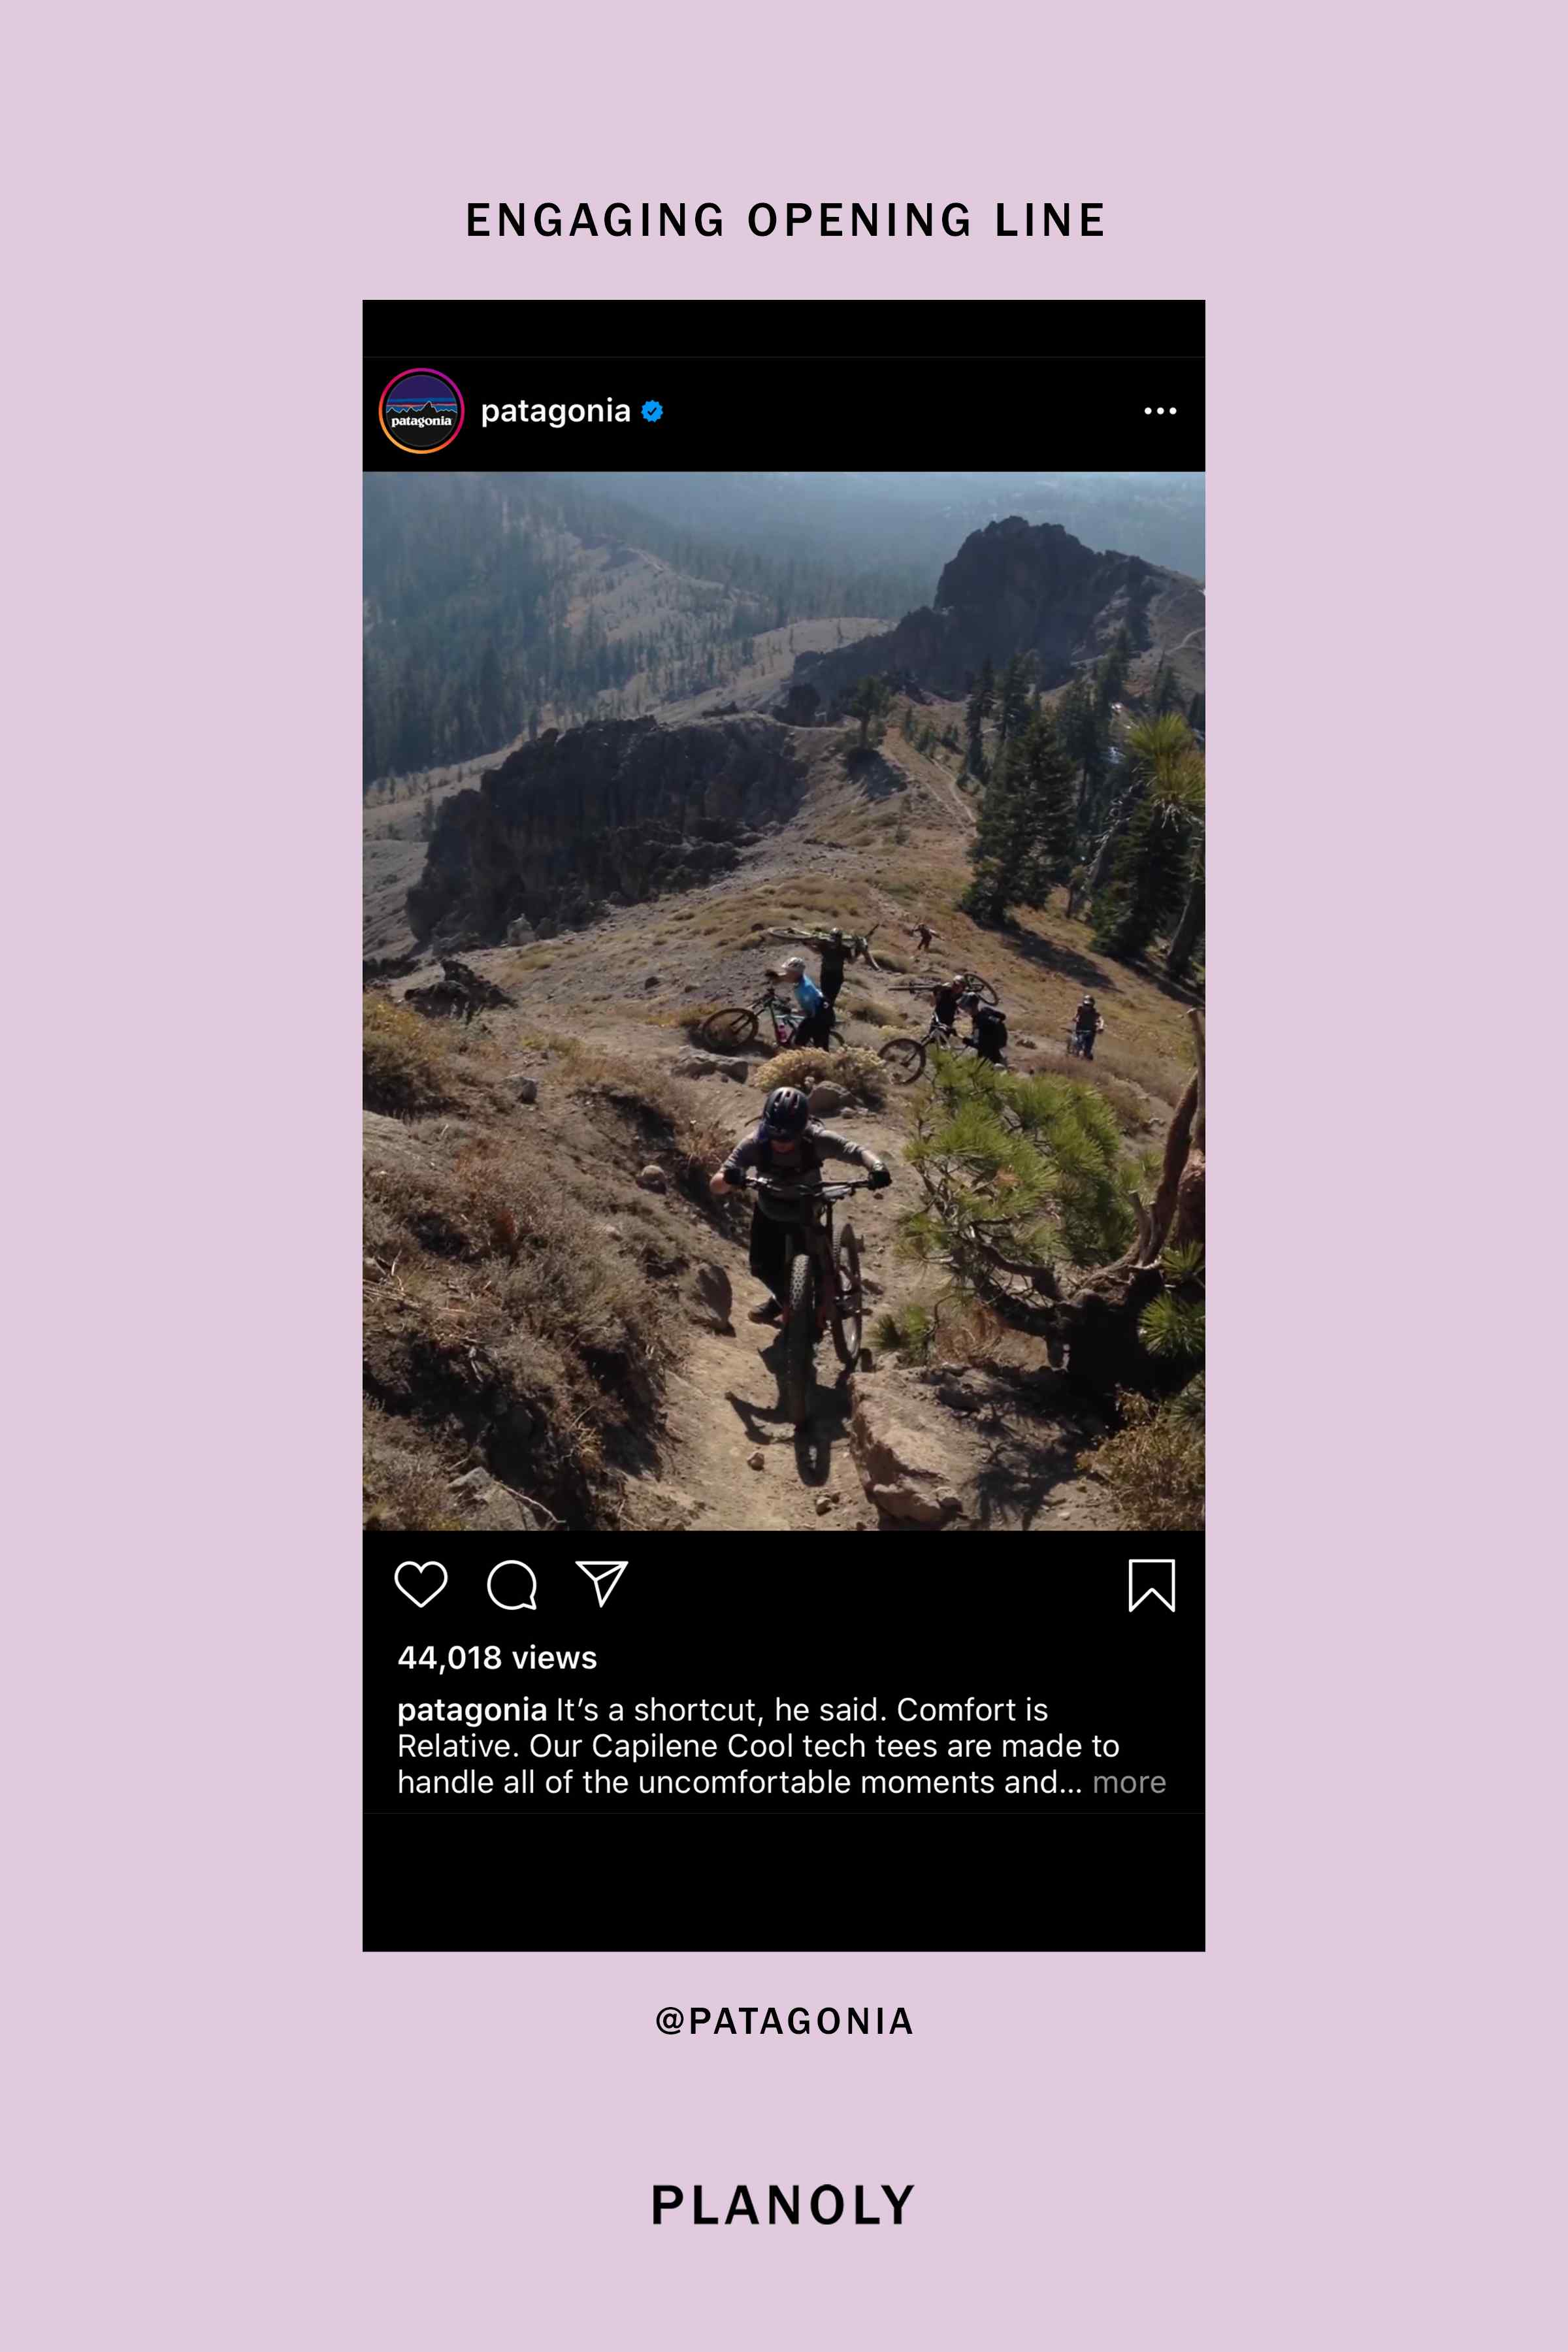 PLANOLY-Blog-Post-The-Ultimate-Guide-to-Writing-Better-Instagram-Captions-Image-1